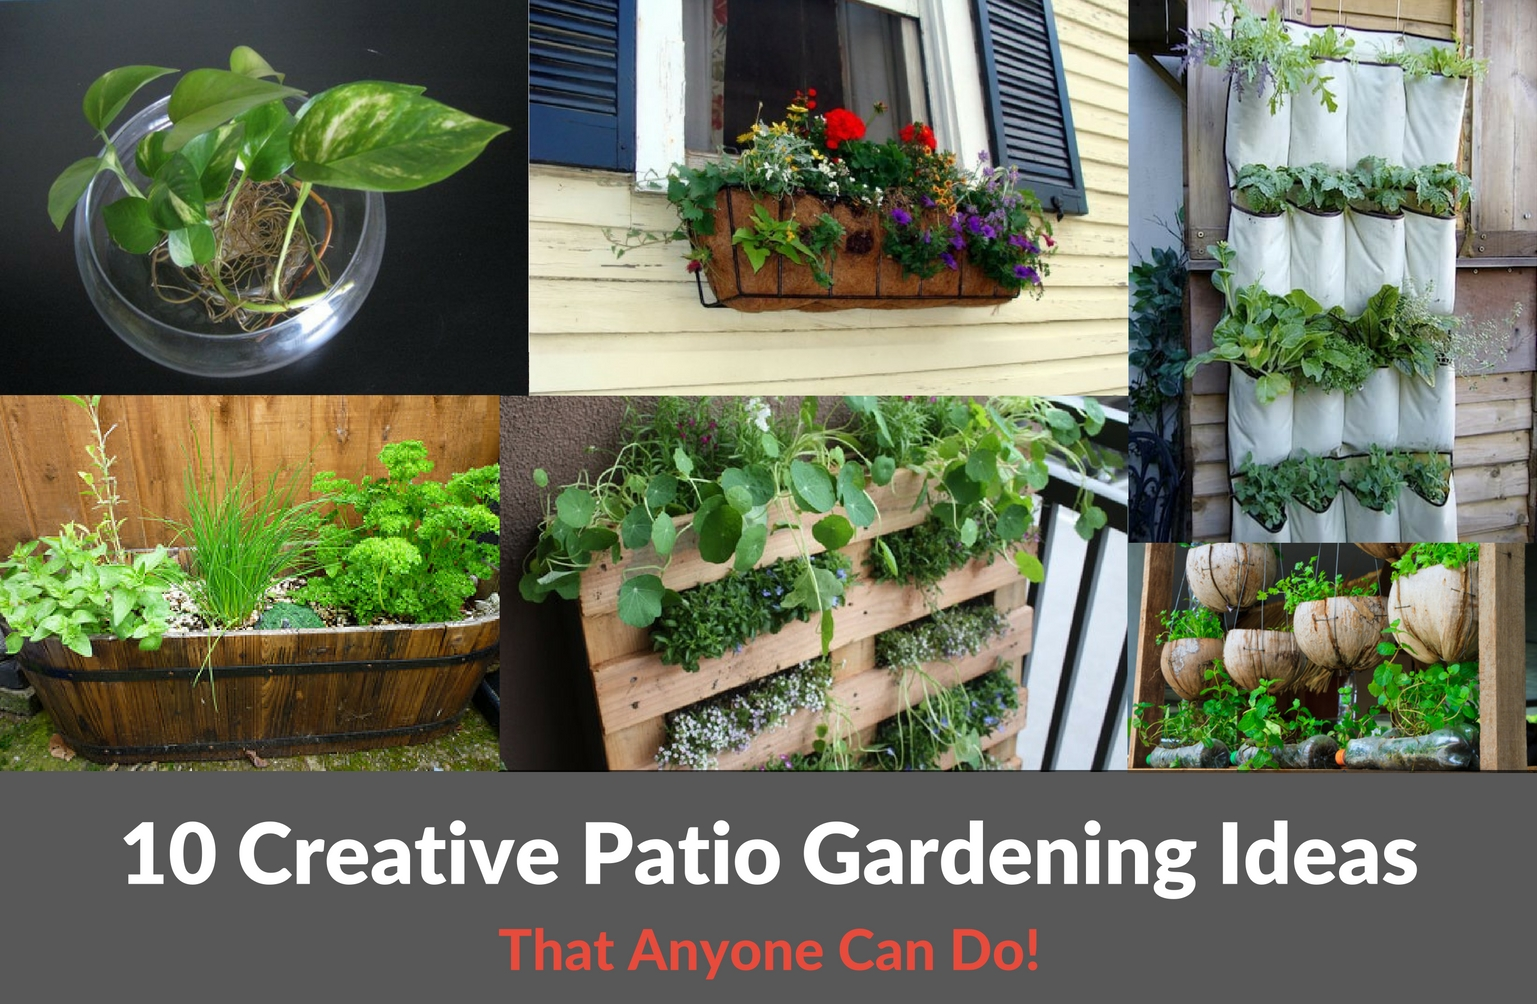 10 Creative Patio Gardening Ideas :: YardYum - Garden Plot Rentals